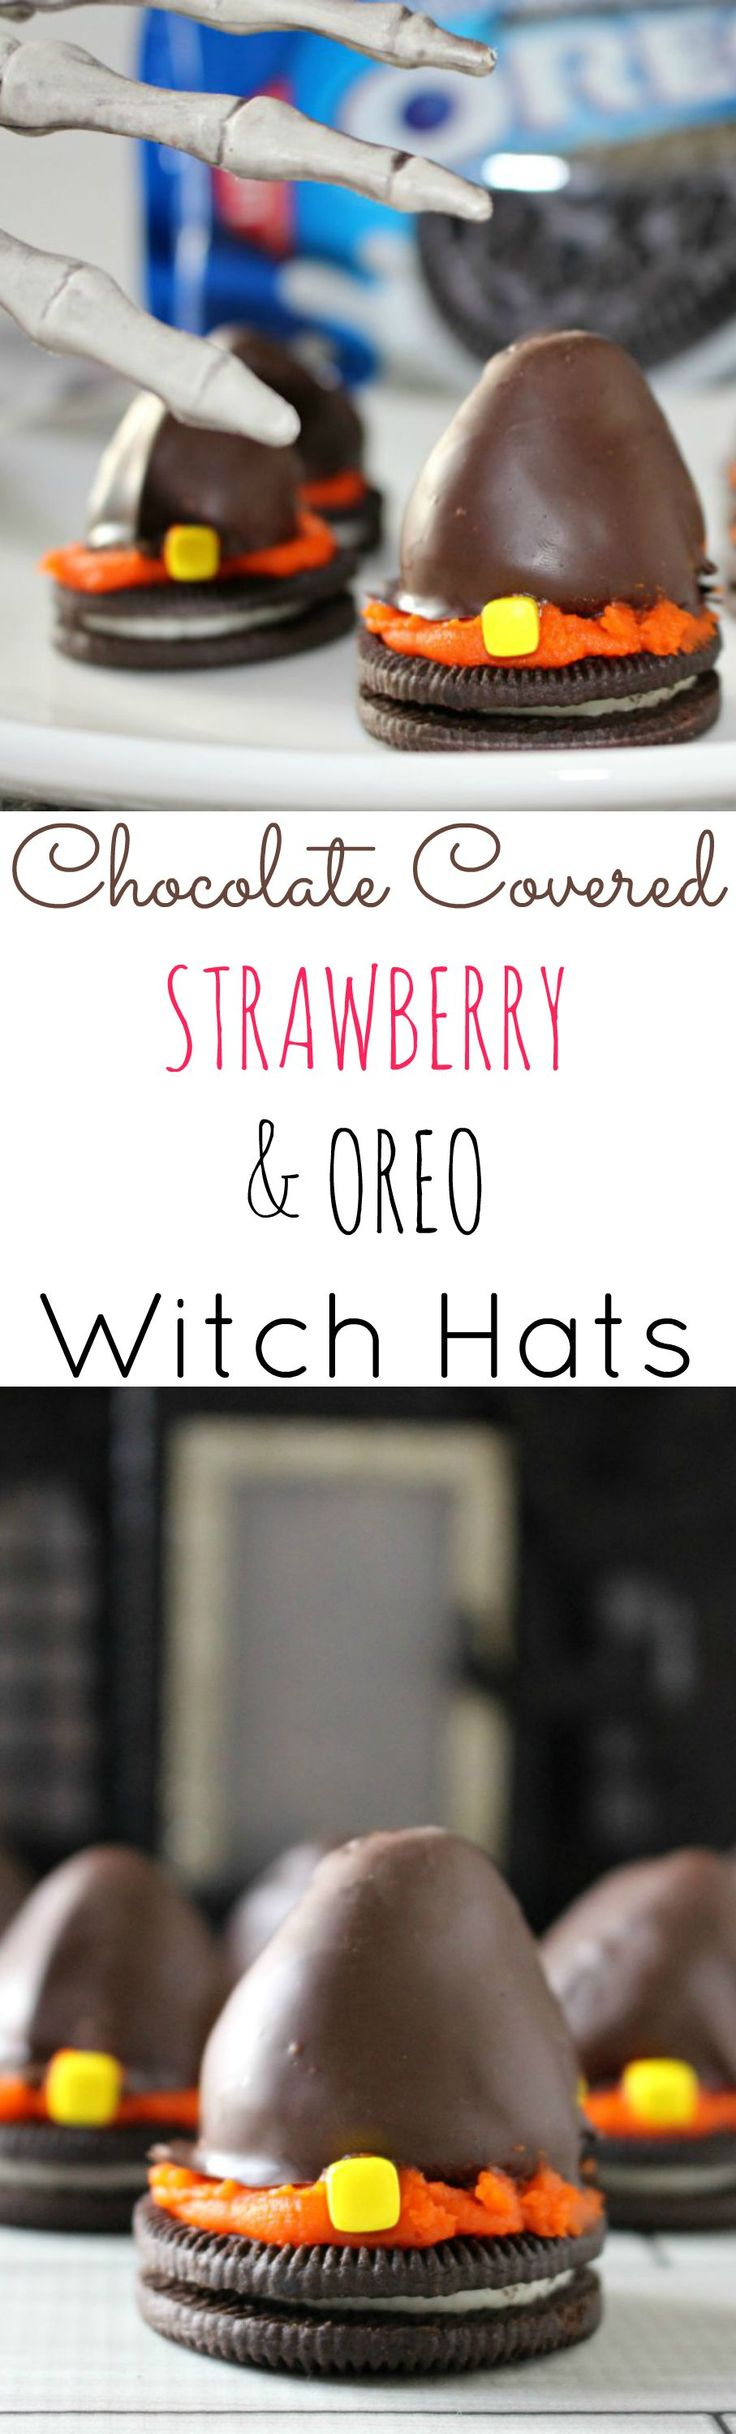 Chocolate Covered Strawberry & Oreo Witch Hats - a super easy Halloween Treat! #SpookySnackLab